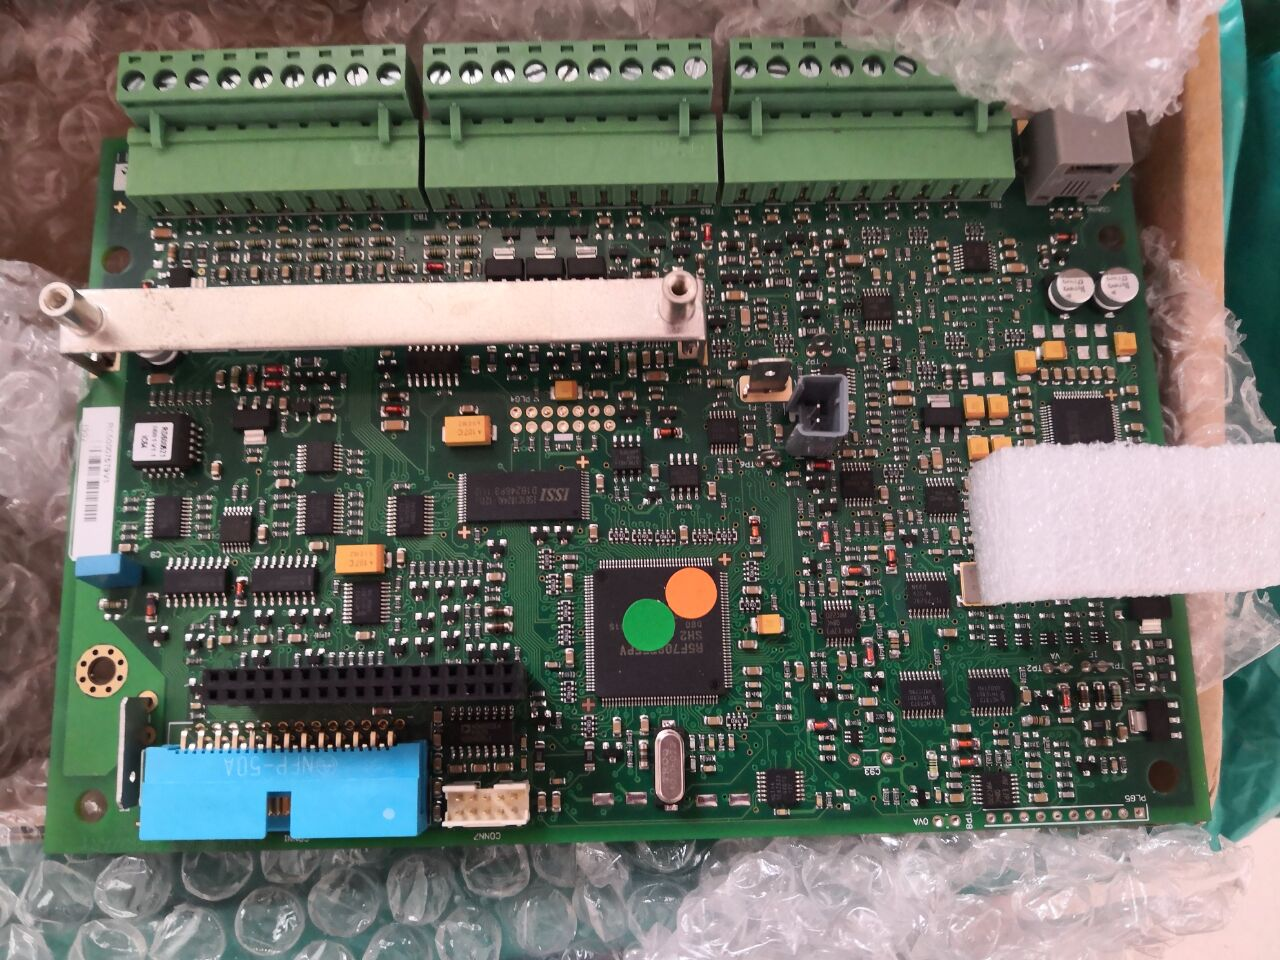 Dc governor 590P motherboard AH500075U002 made in ChinaDc governor 590P motherboard AH500075U002 made in China